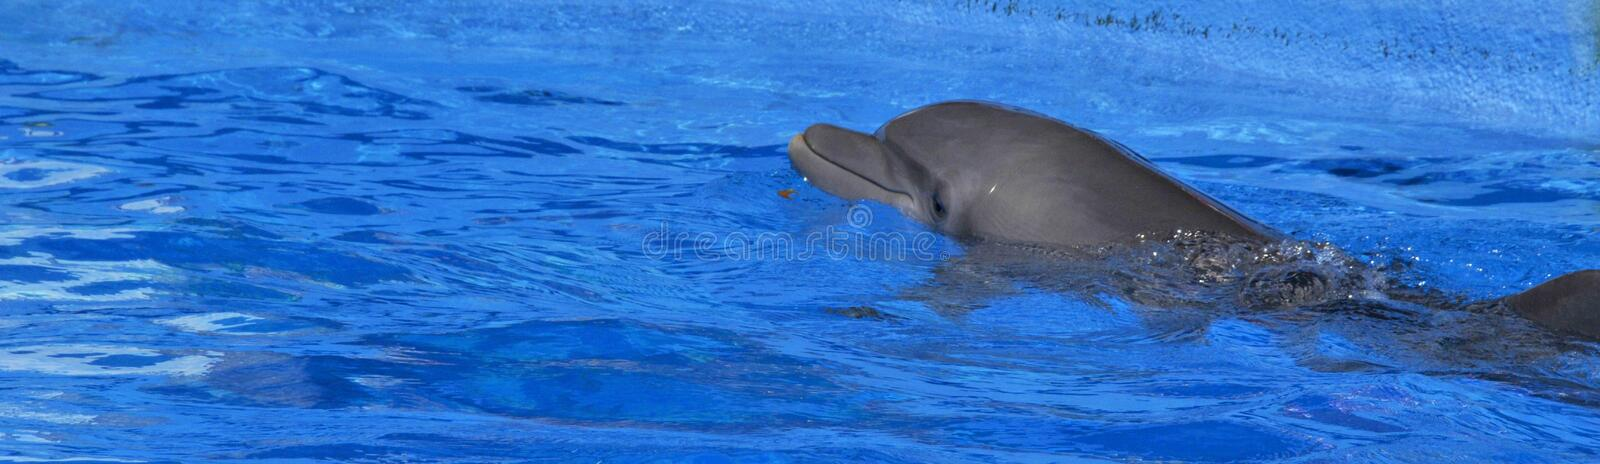 Dolphins are a widely distributed and diverse group of aquatic mammals. They are an informal grouping within the order Cetacea, excluding whales and porpoises stock photography